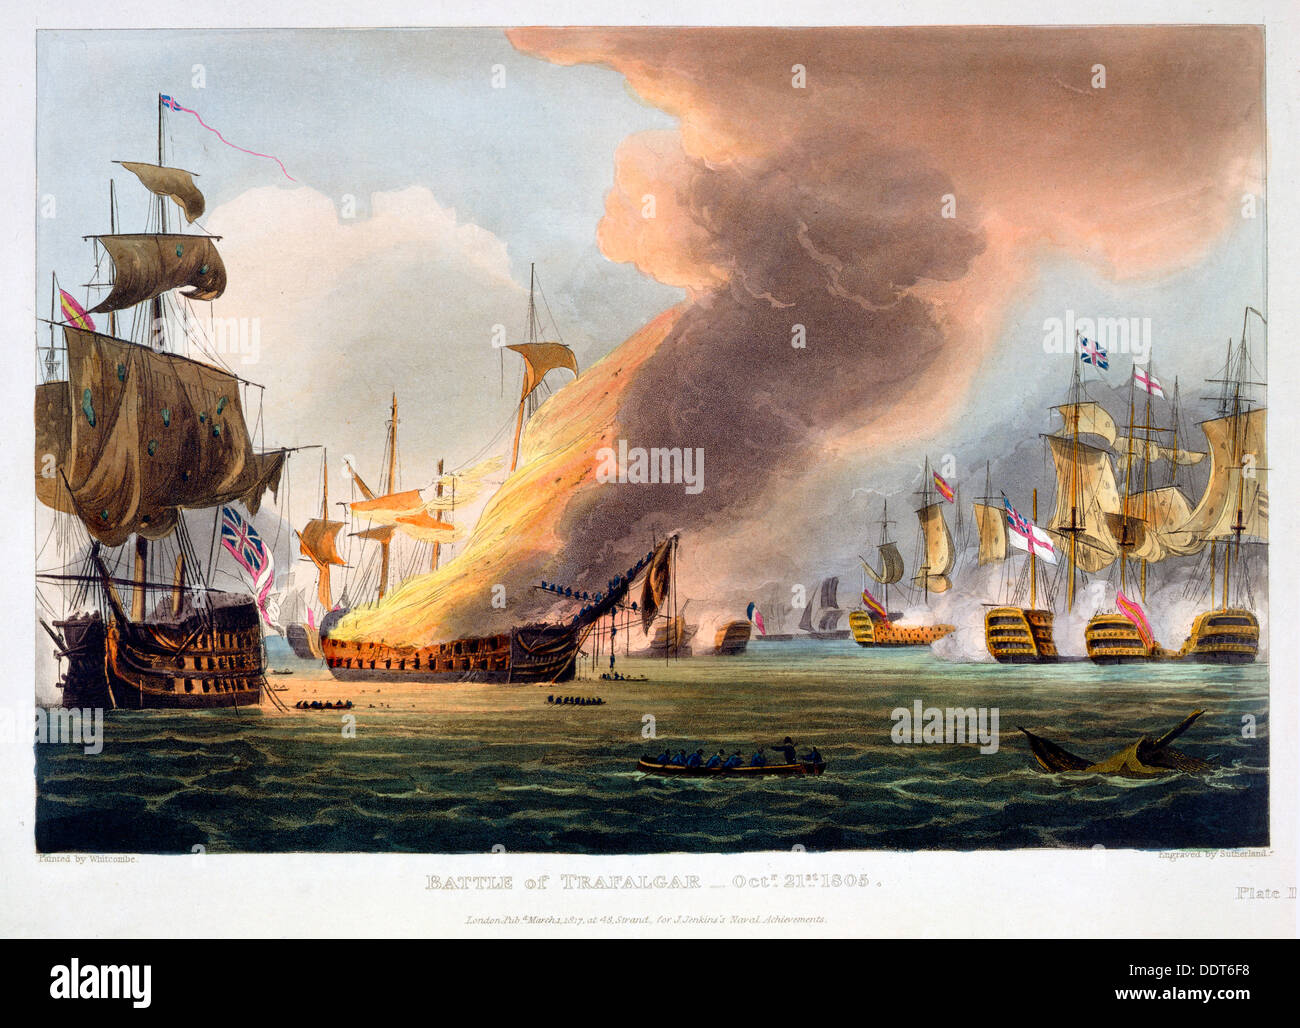 La bataille de Trafalgar, 21 octobre 1805 (1816). Artiste : Thomas Sutherland Photo Stock